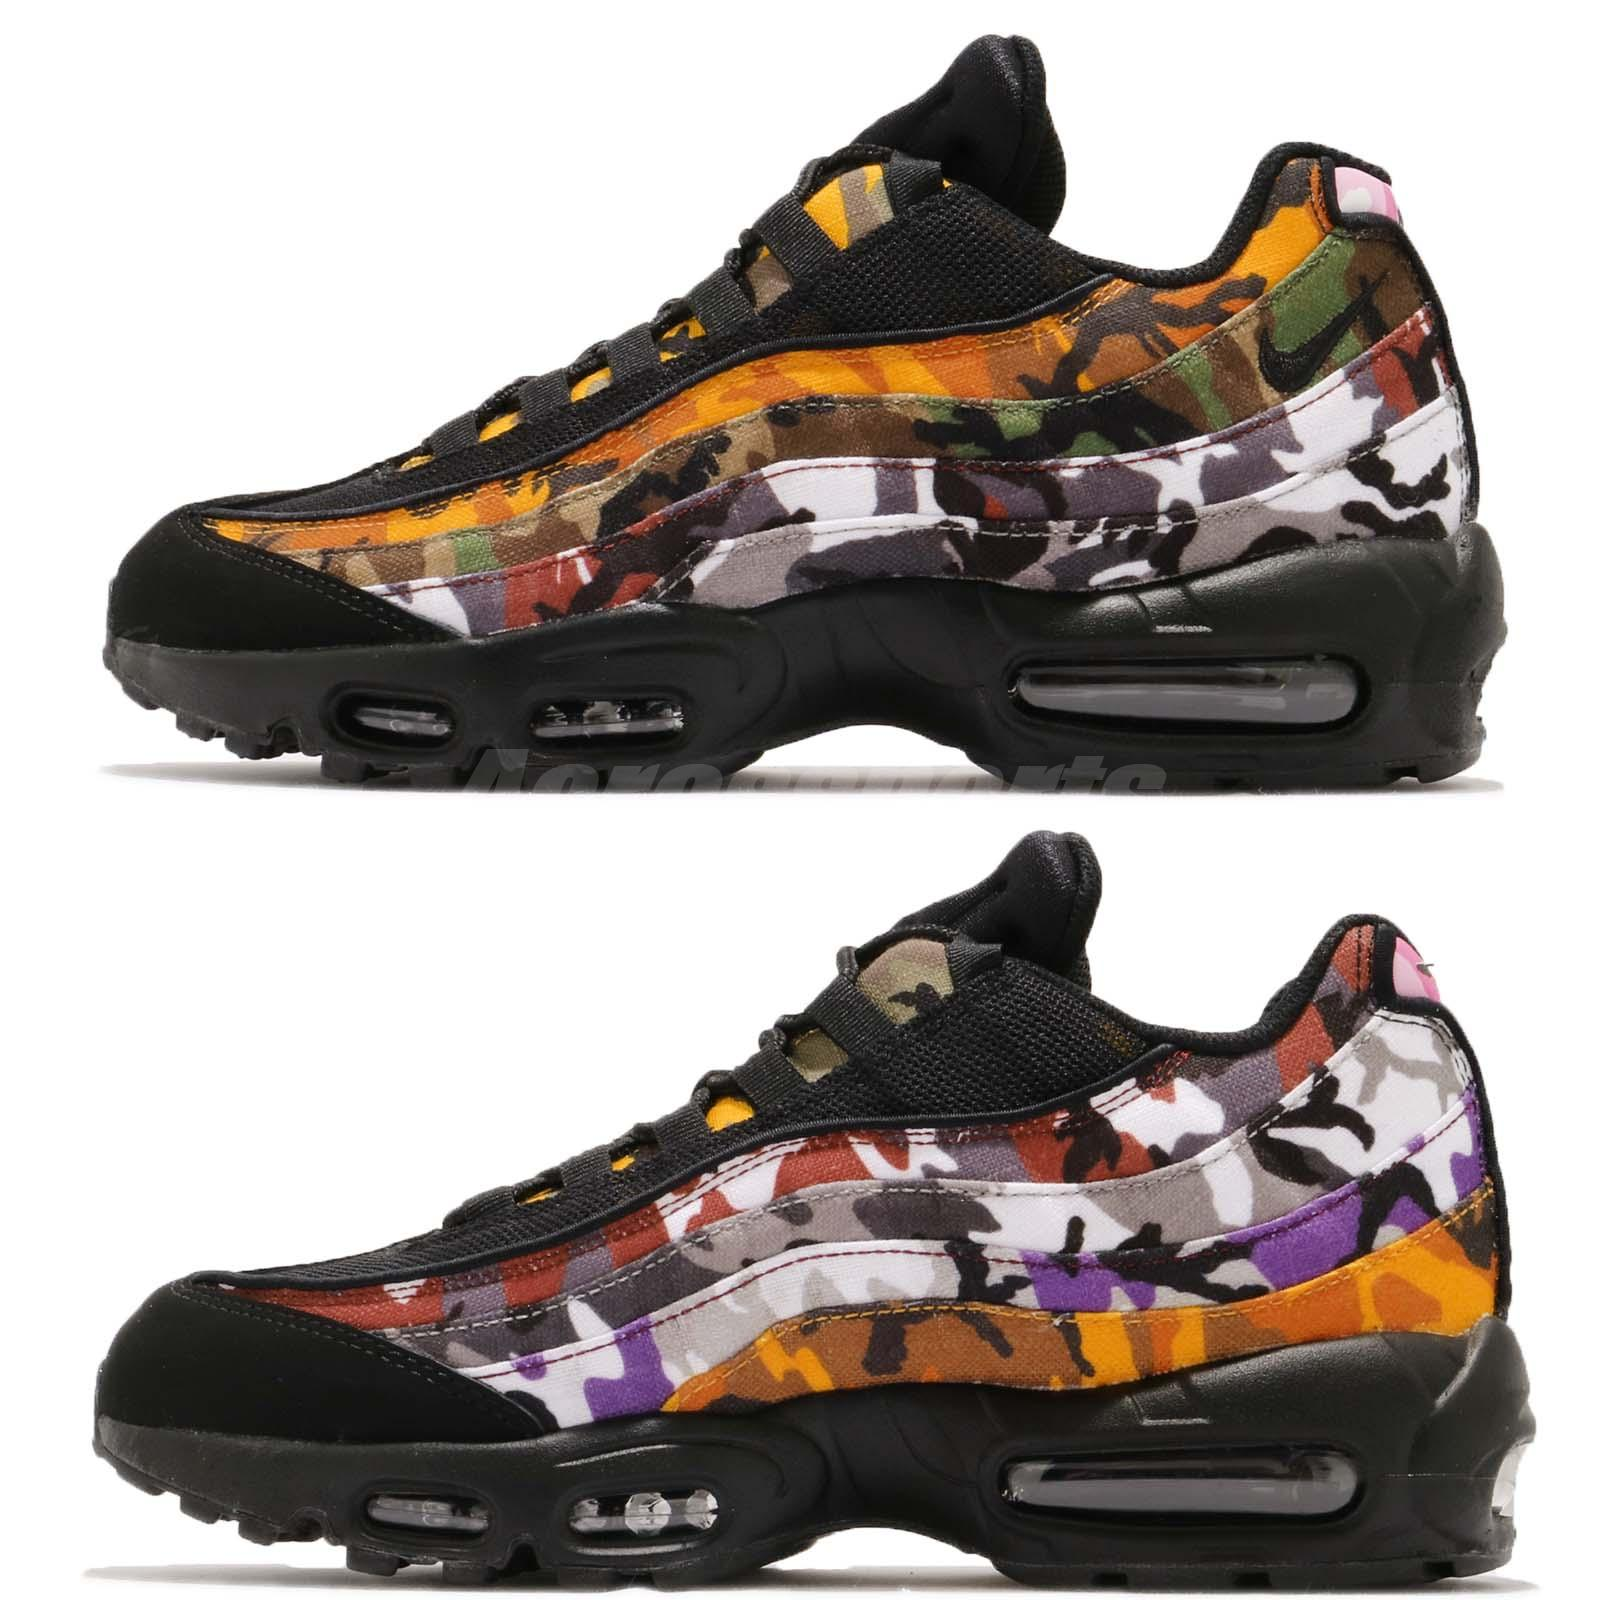 9052ad8cf2fc Nike Air Max 95 ERDL Party Black Multi-Colot Camo Print NSW Sneakers  AR4473-001